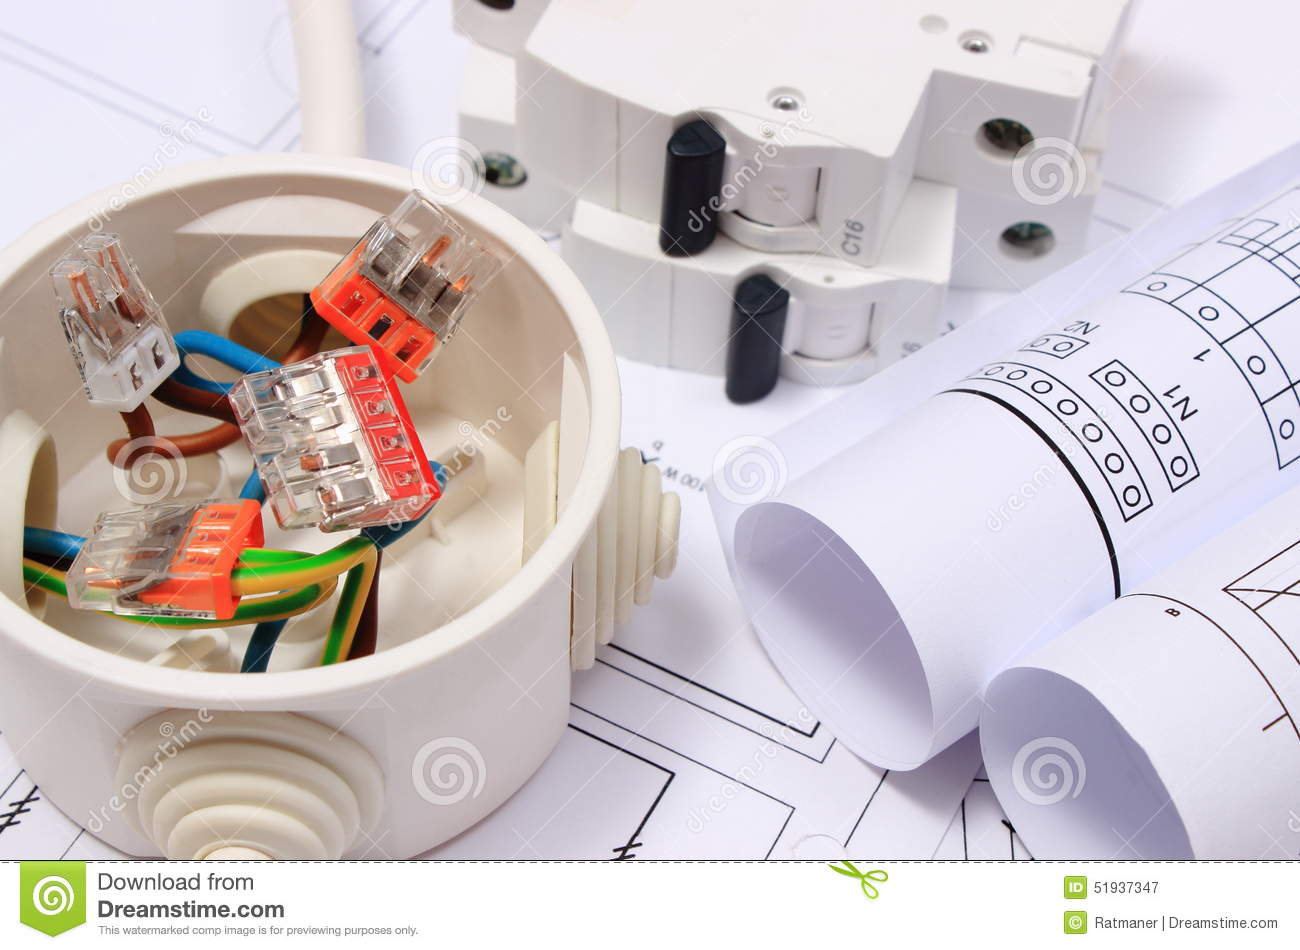 Electrical Box Diagrams And Electric Fuse On Construction Drawing Copper Wire Diagram Connections In Rolls Of House Accessories For Engineering Work